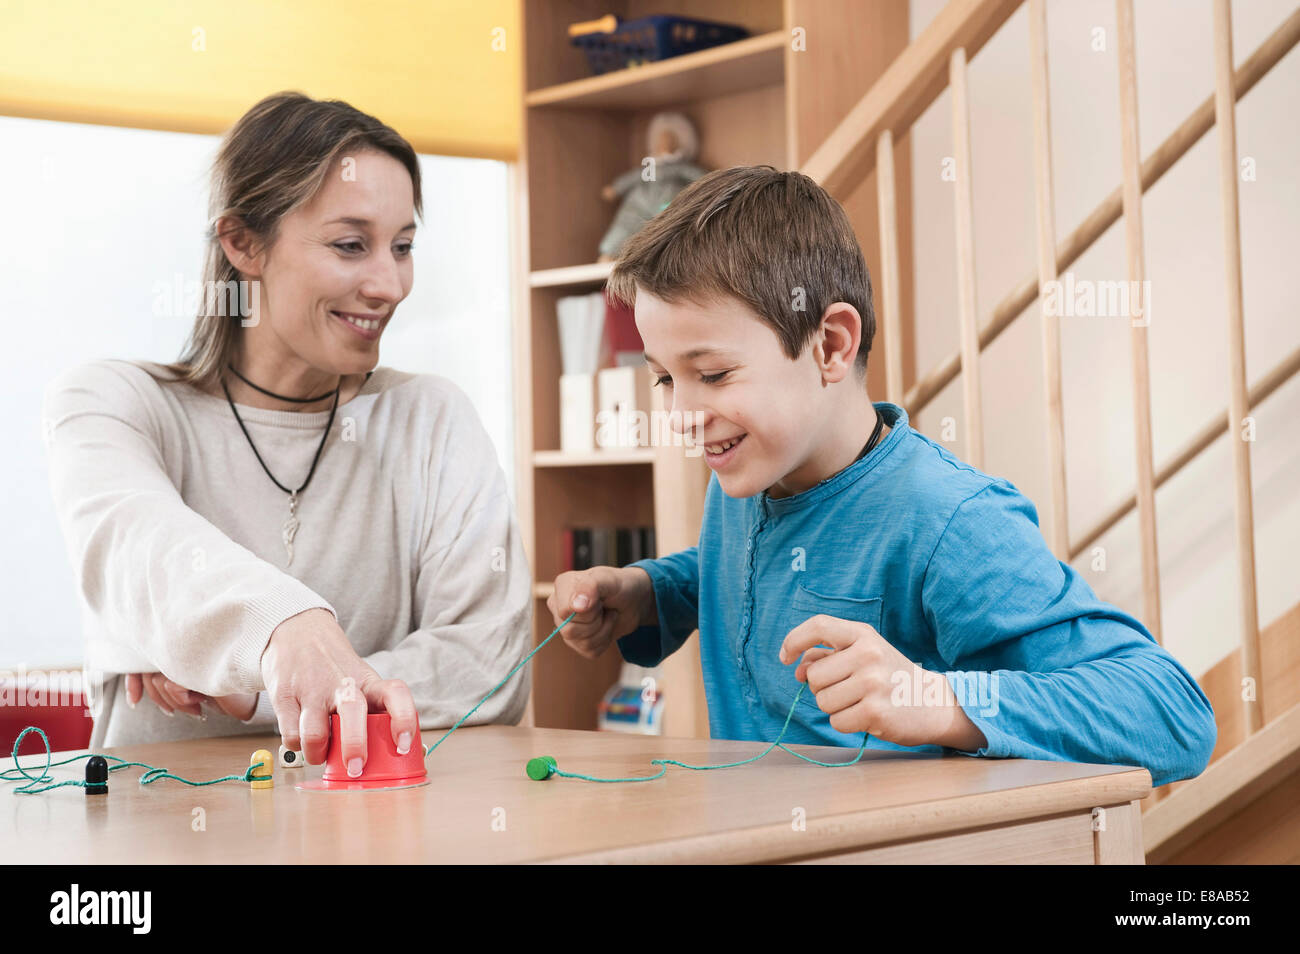 Portrait of playing boy and female childcare assistant - Stock Image